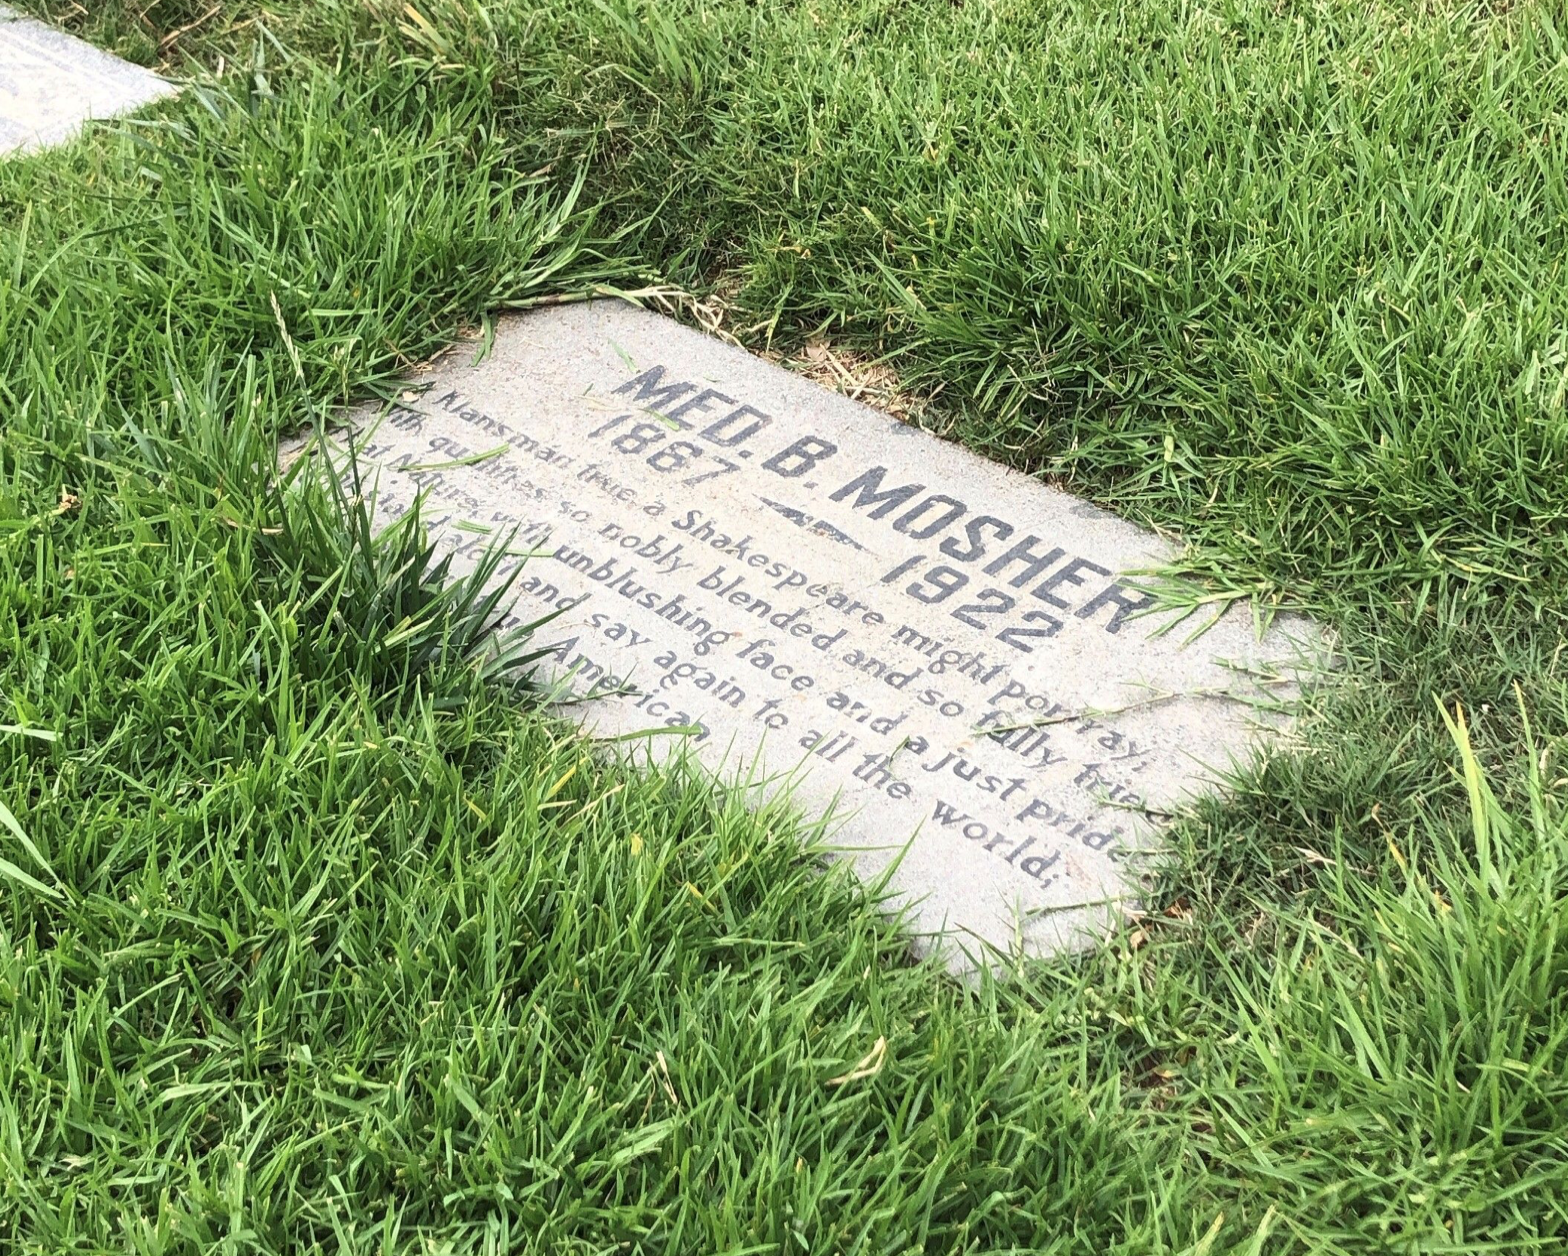 This is at Inglewood Cemetery.